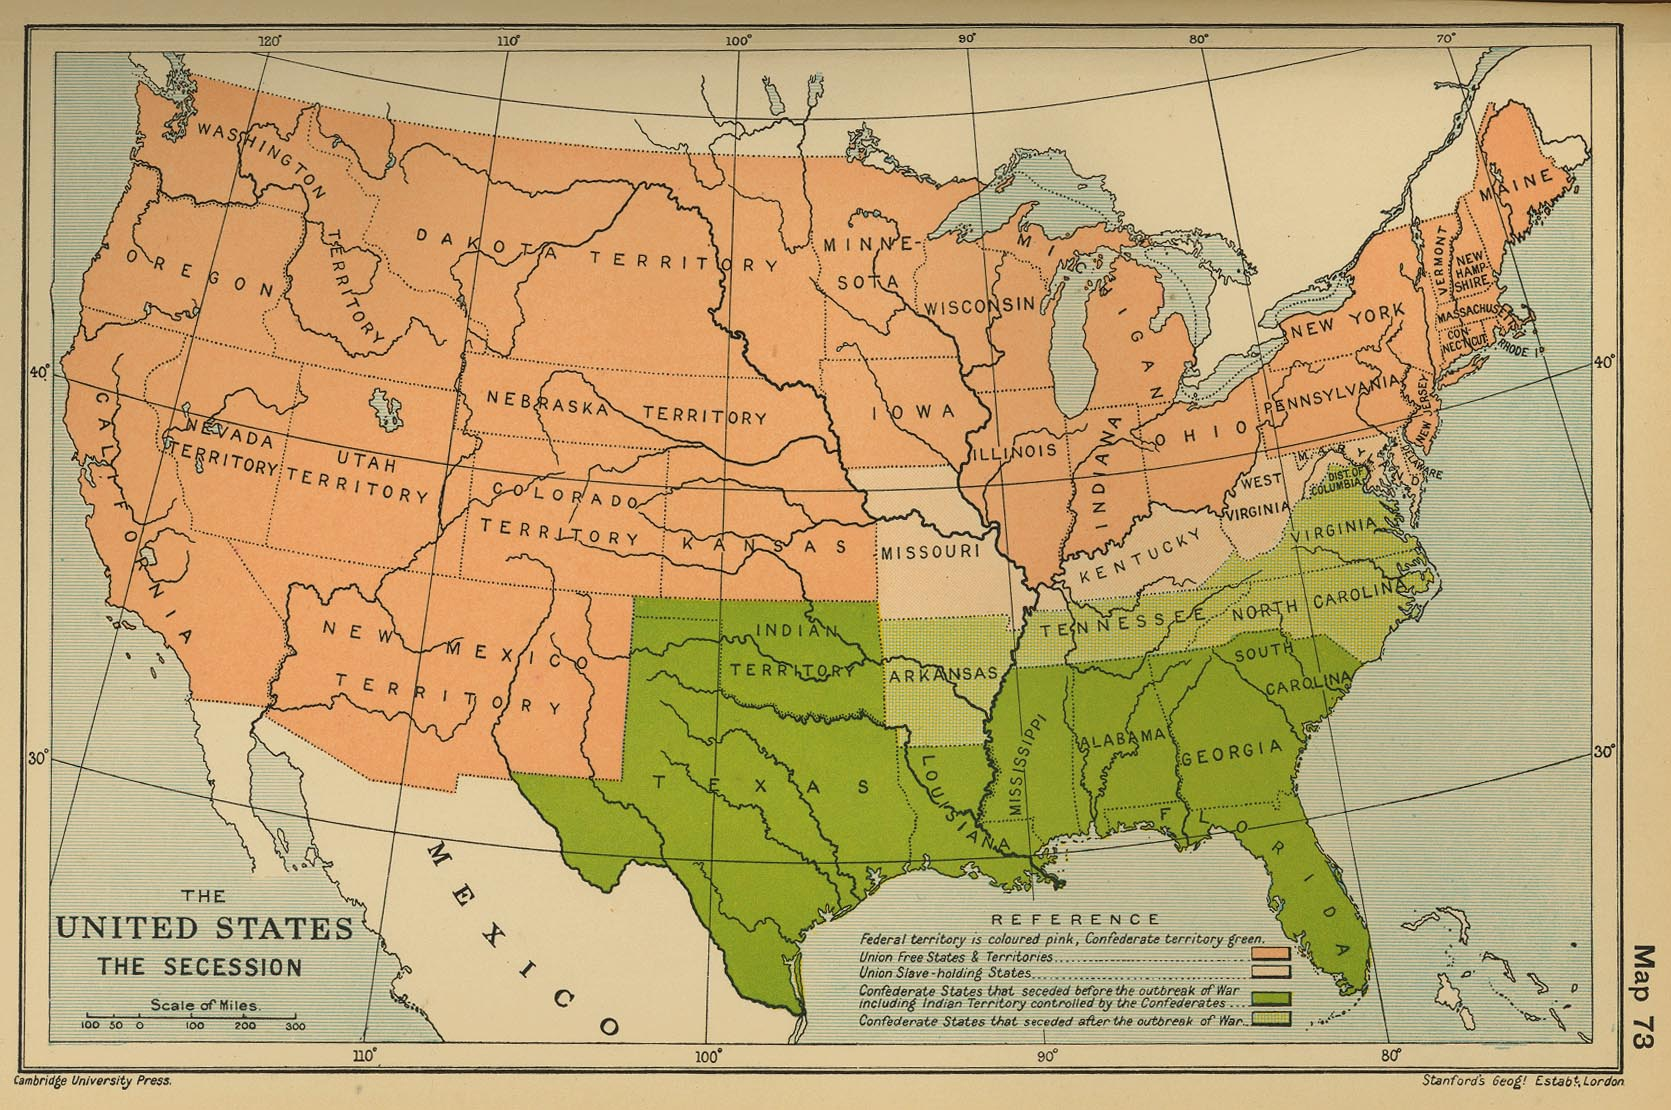 Map of the United States: The Secession 1860